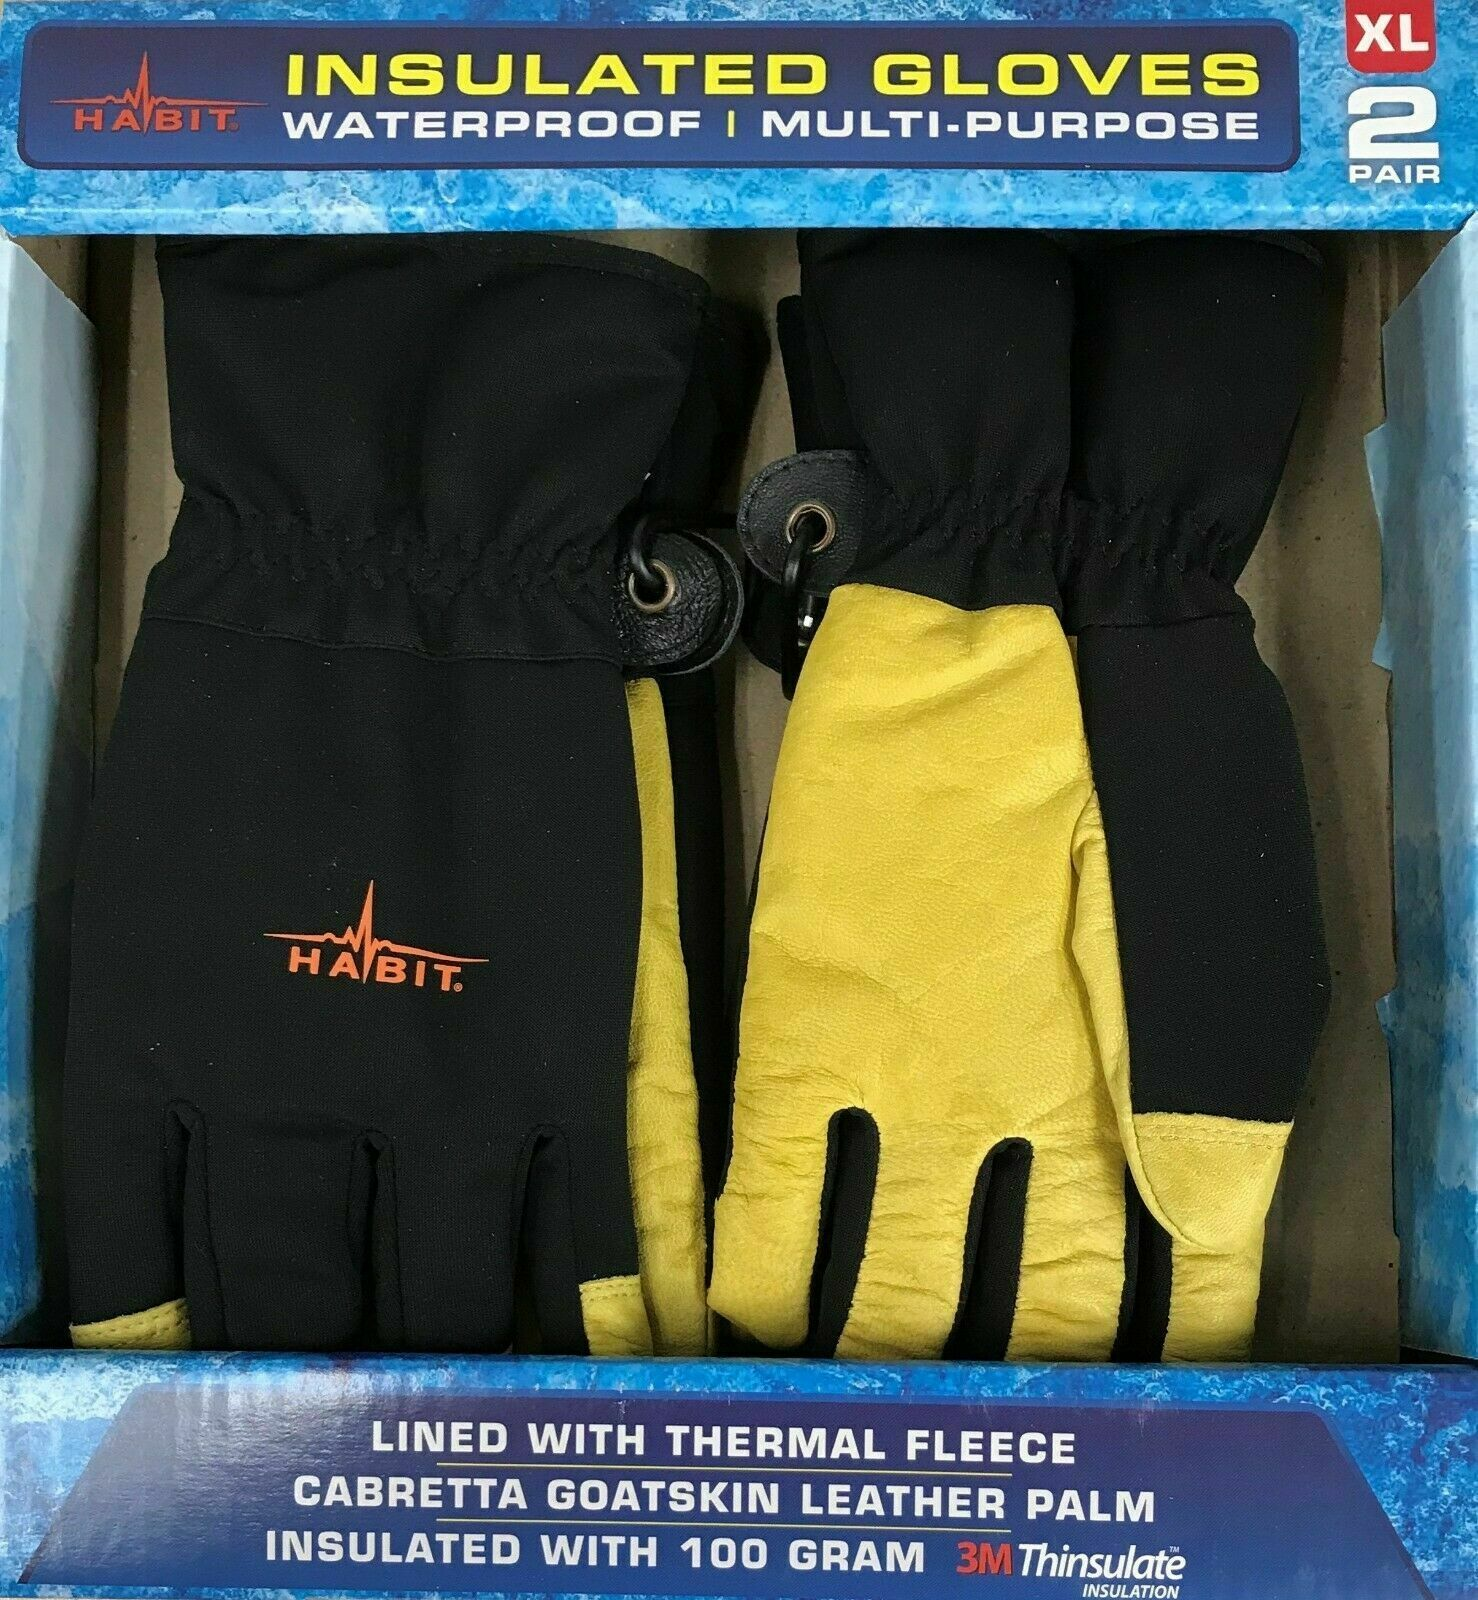 NEW Habit Insulated Gloves Waterproof Multipurpose FAST SHIPPING!